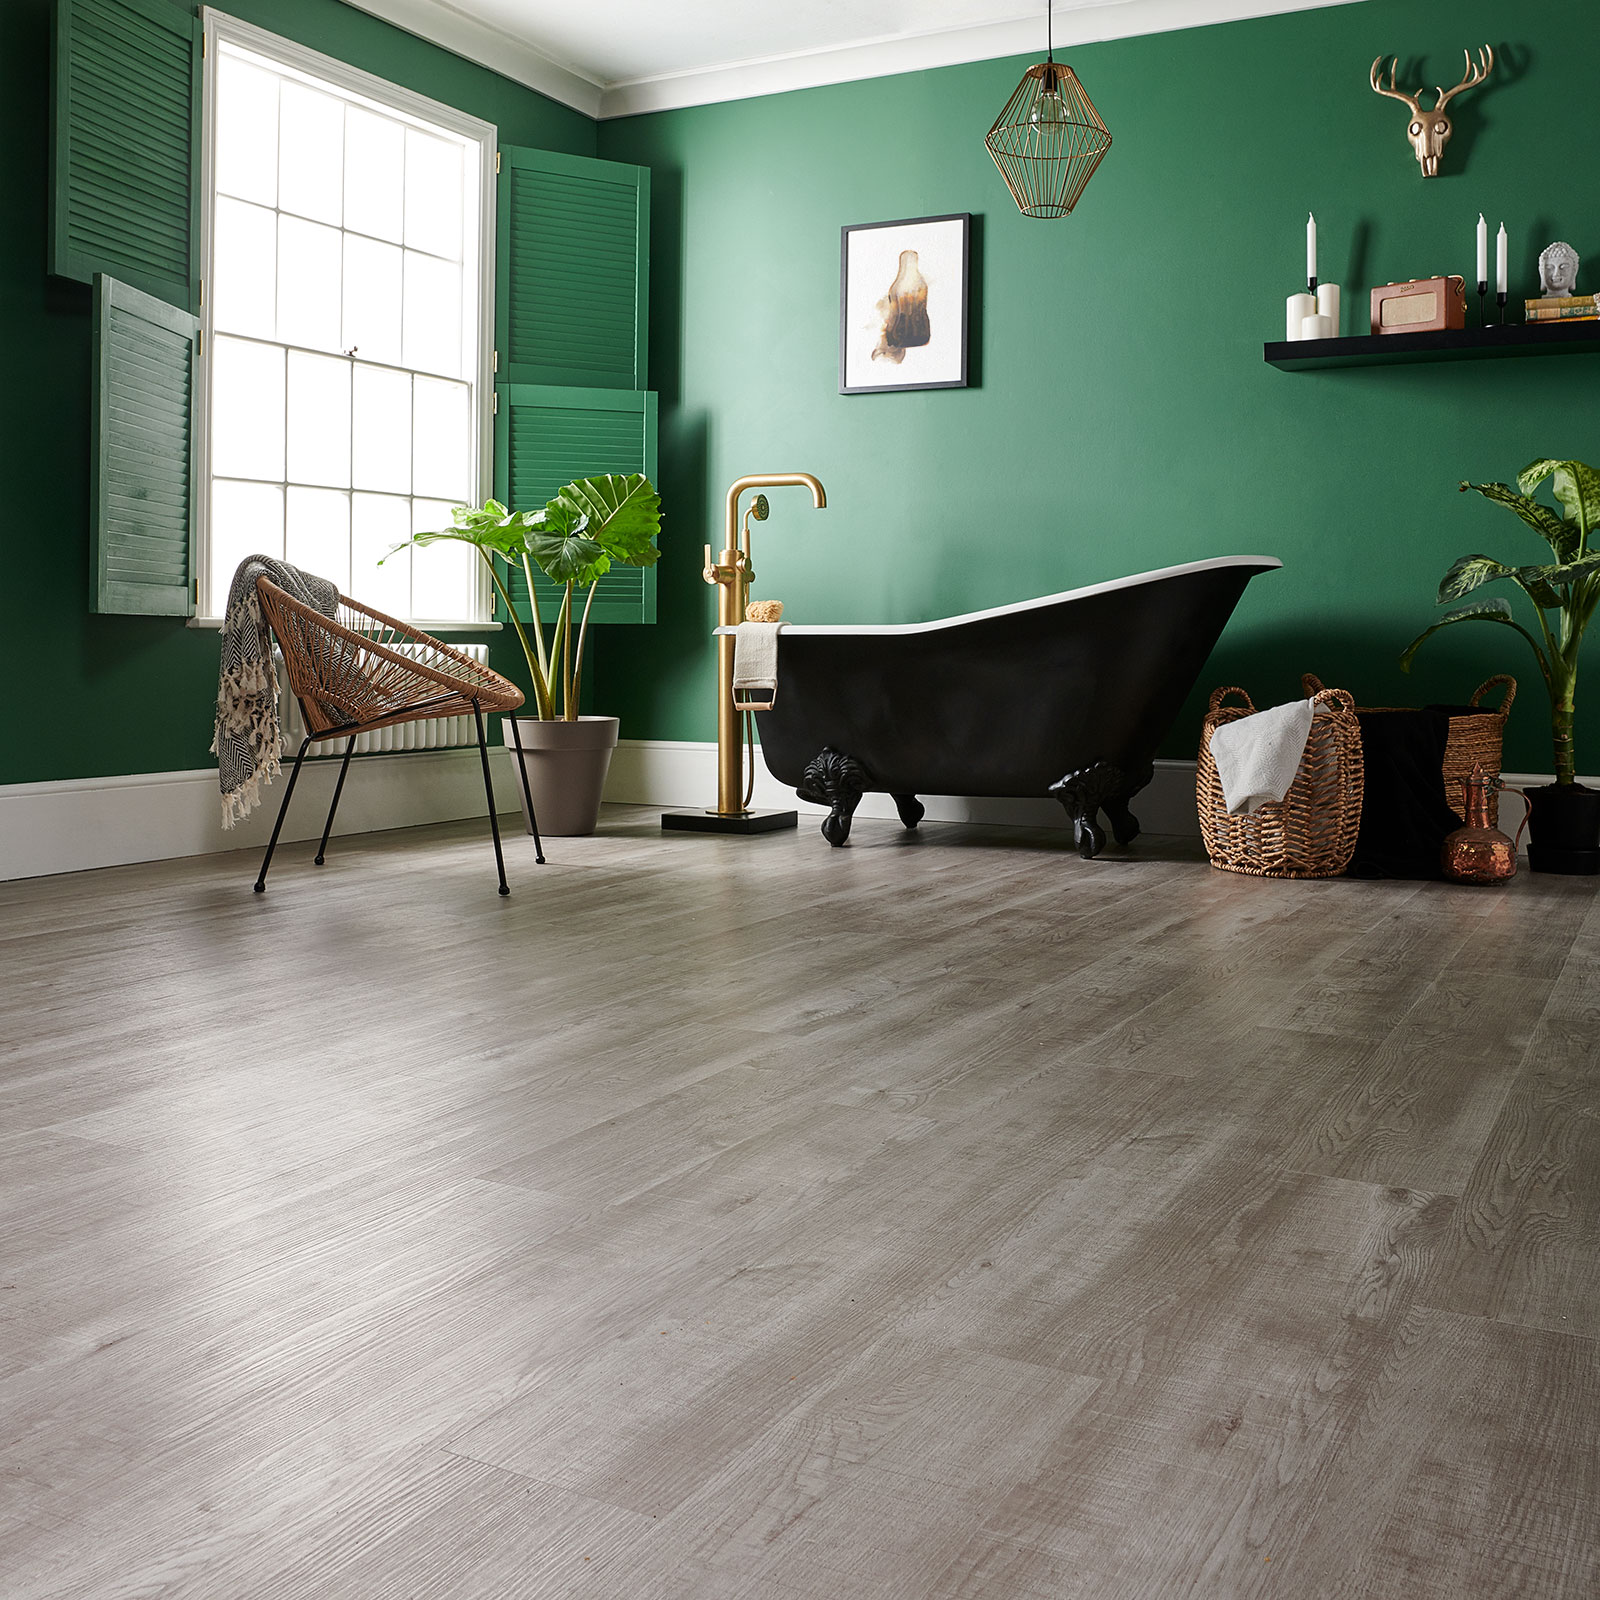 Awe Inspiring 7 Beautiful And Trendy Laminate Or Lvp Floors Home Interior And Landscaping Eliaenasavecom